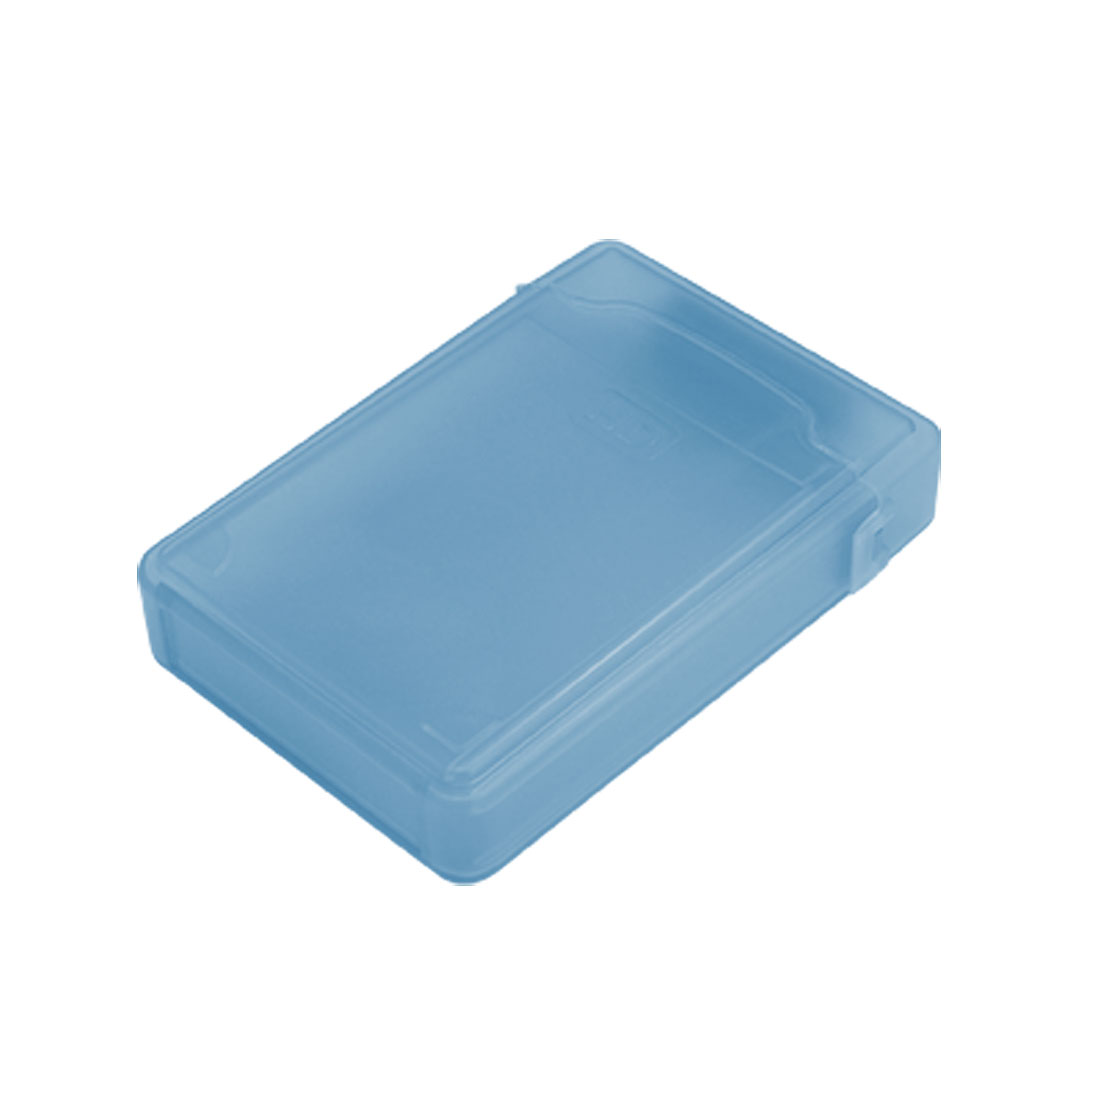 3.5 Inch IDE SATA Hard Drive HDD Store Tank Box Case Blue